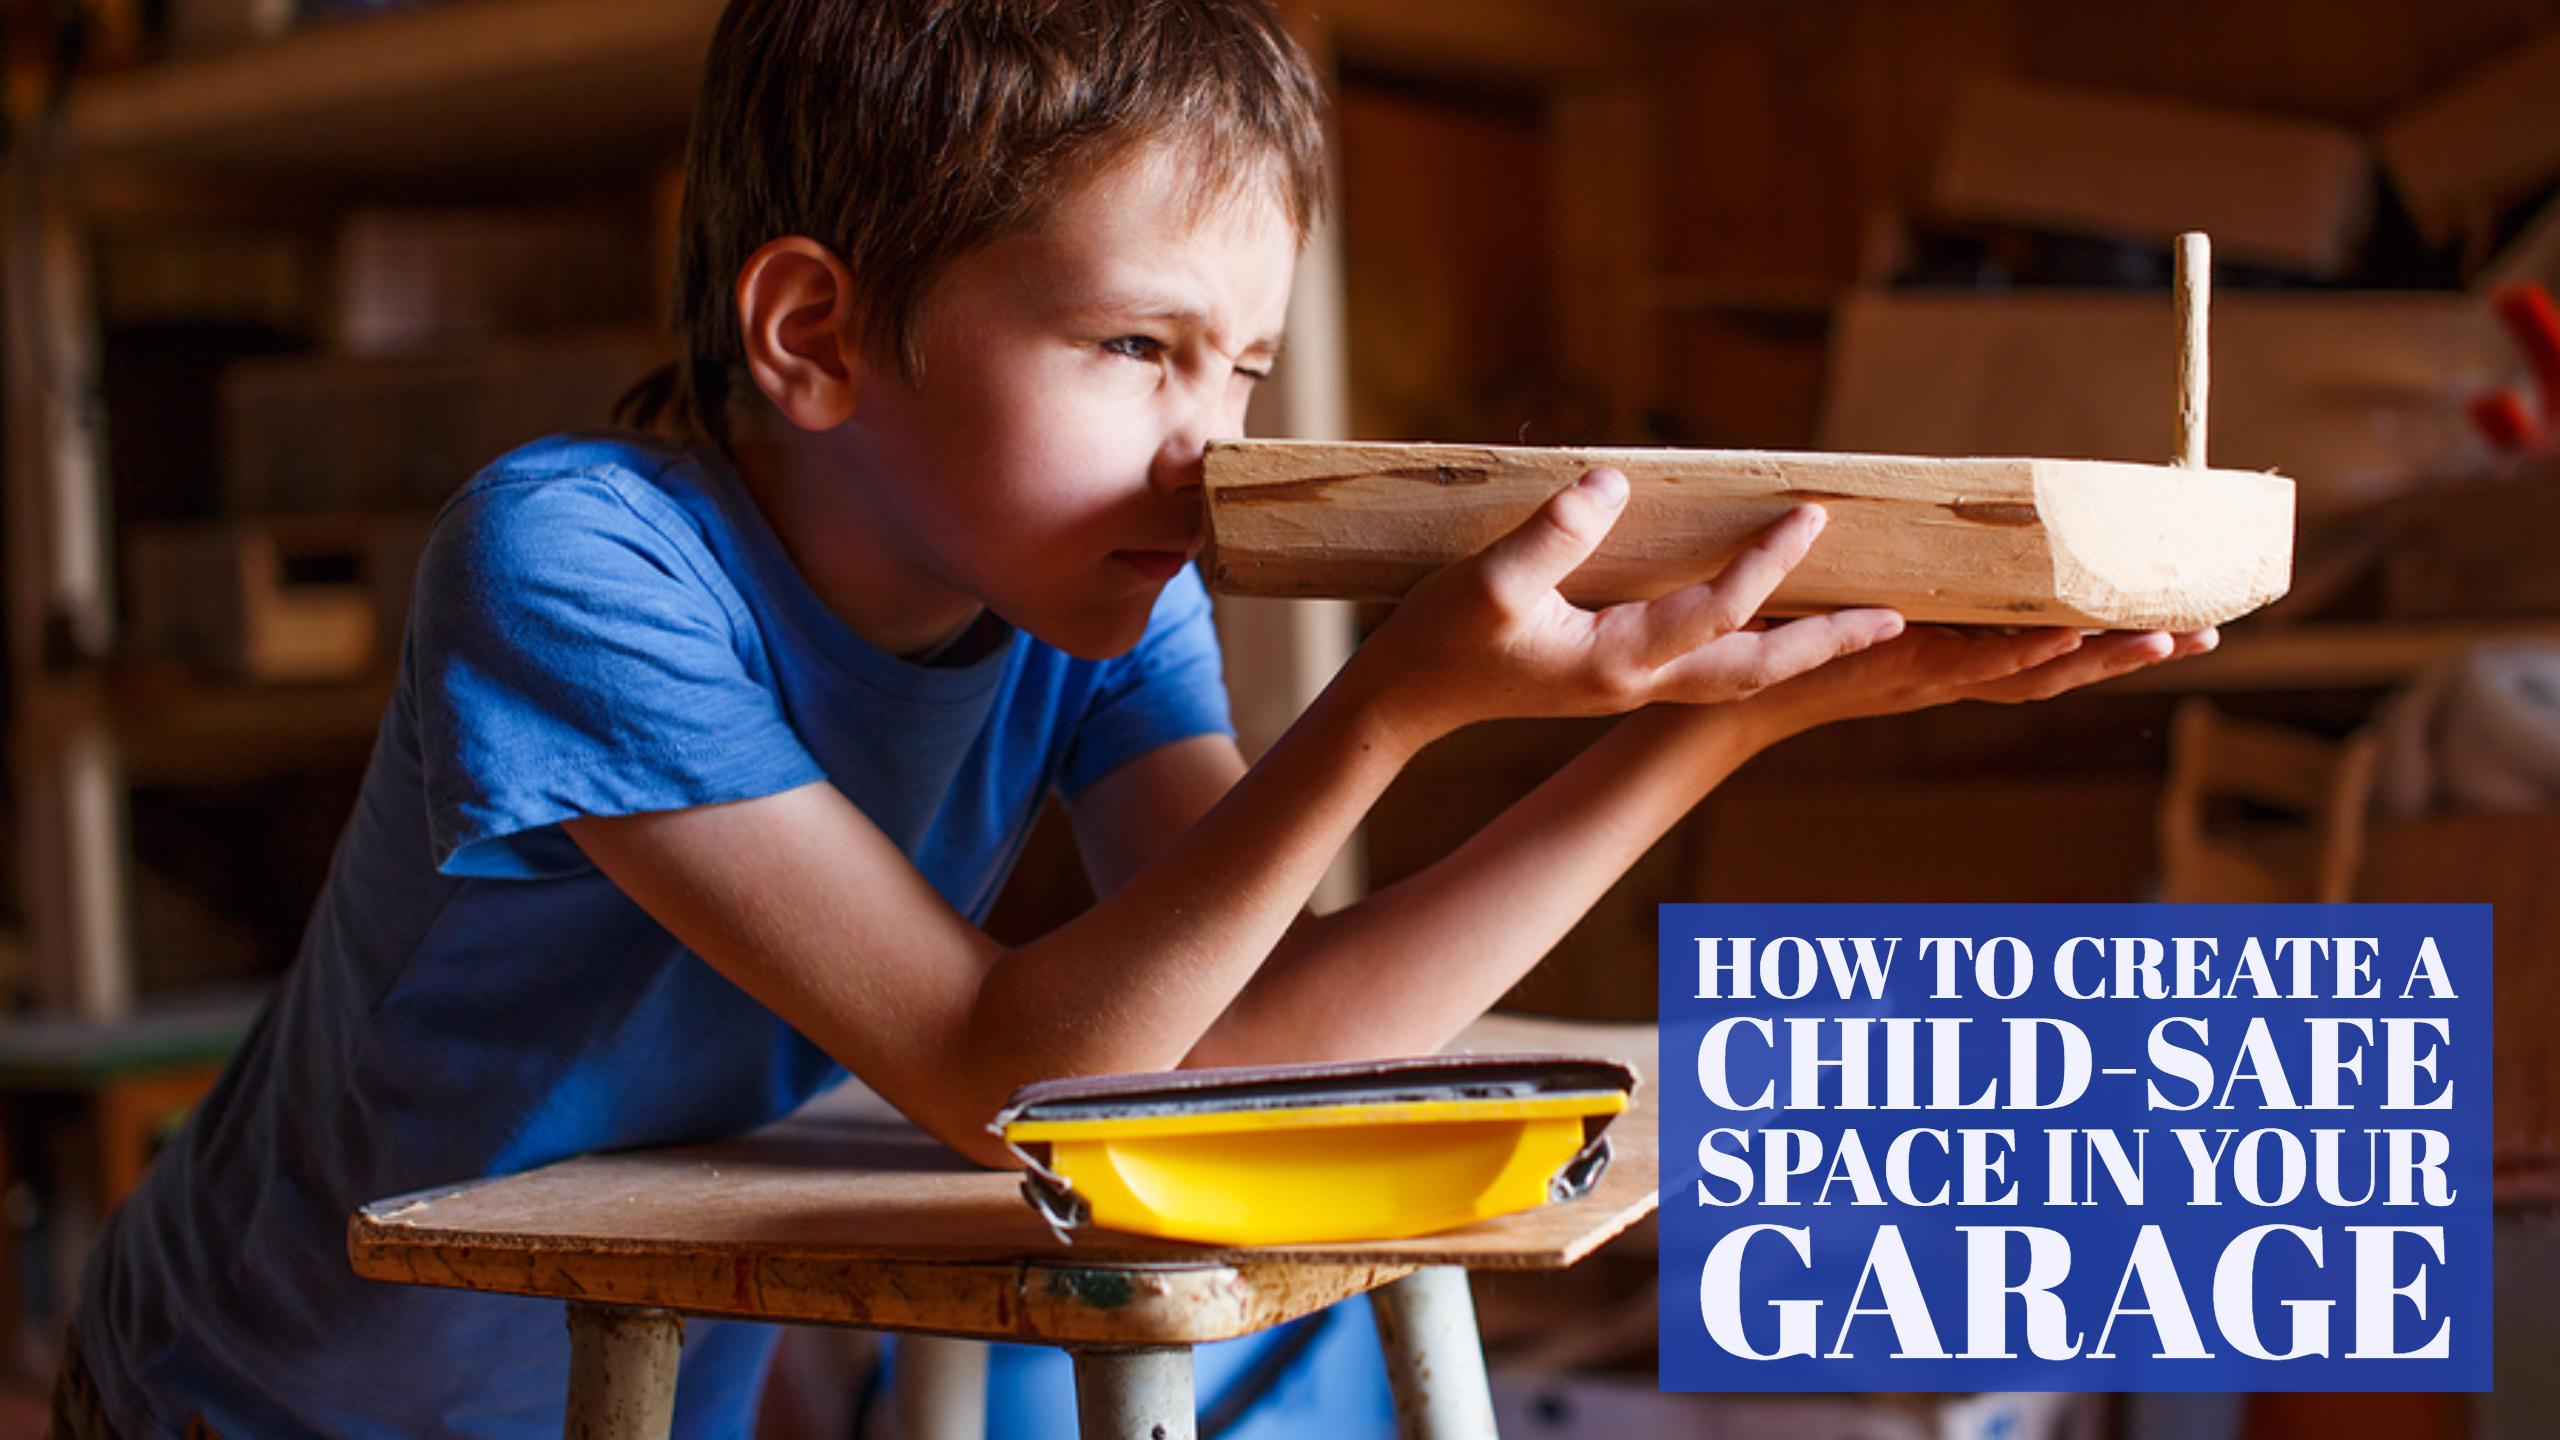 How to Create a Child-Safe Space in Your Garage - Blog